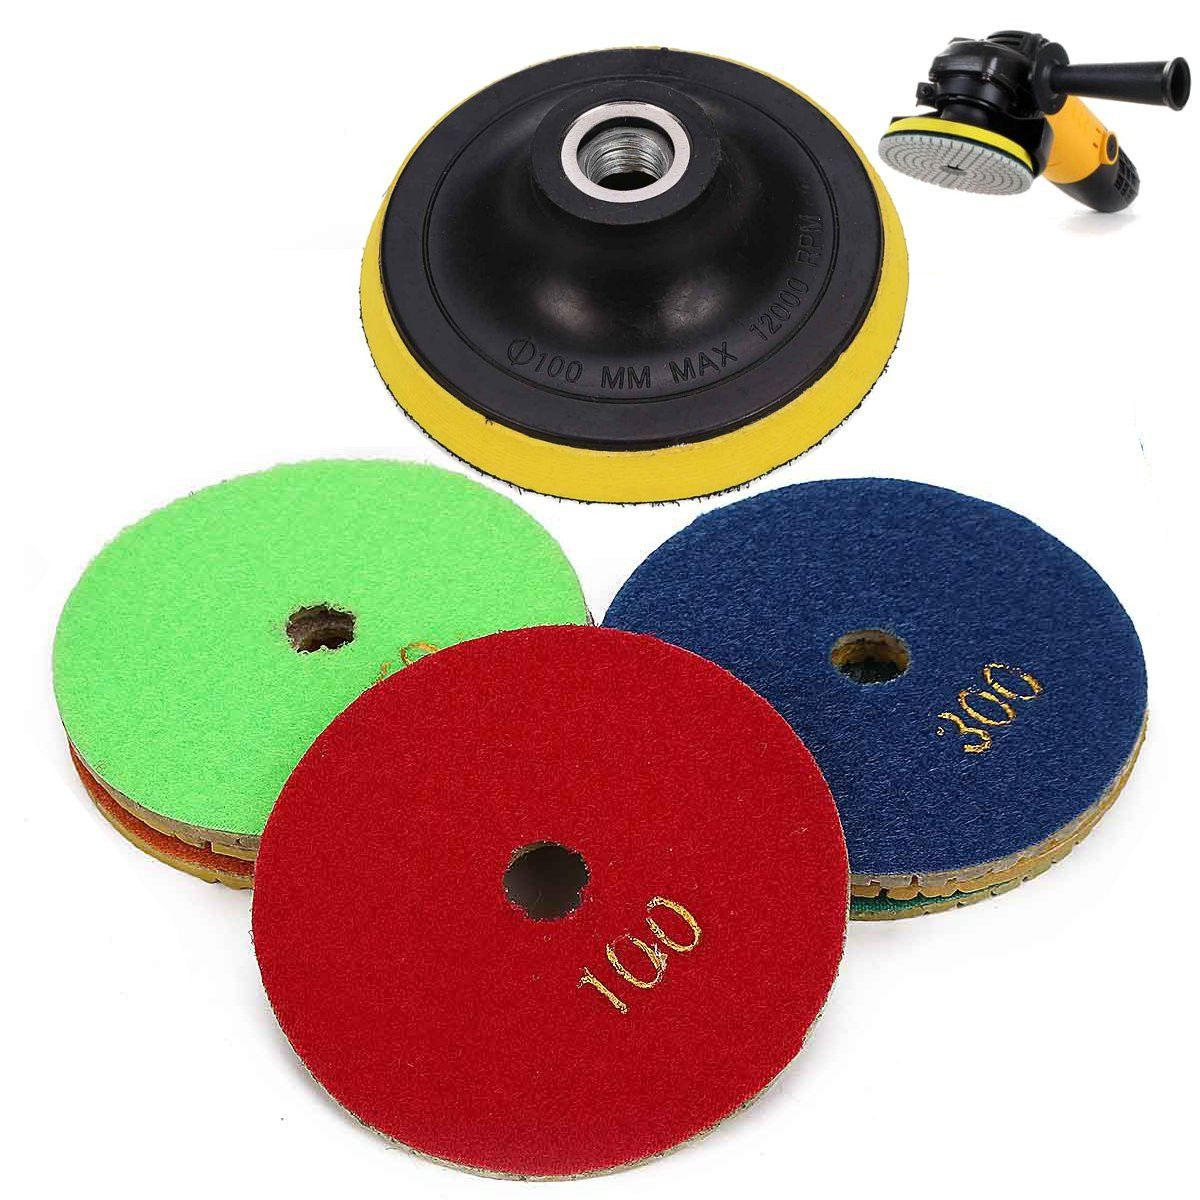 8Pcs/Set 100mm 4 inch Diamond Polishing Pad M14 Granite Marble Concrete Stone Grinding Discs Wet/Dry for Angle Grinder